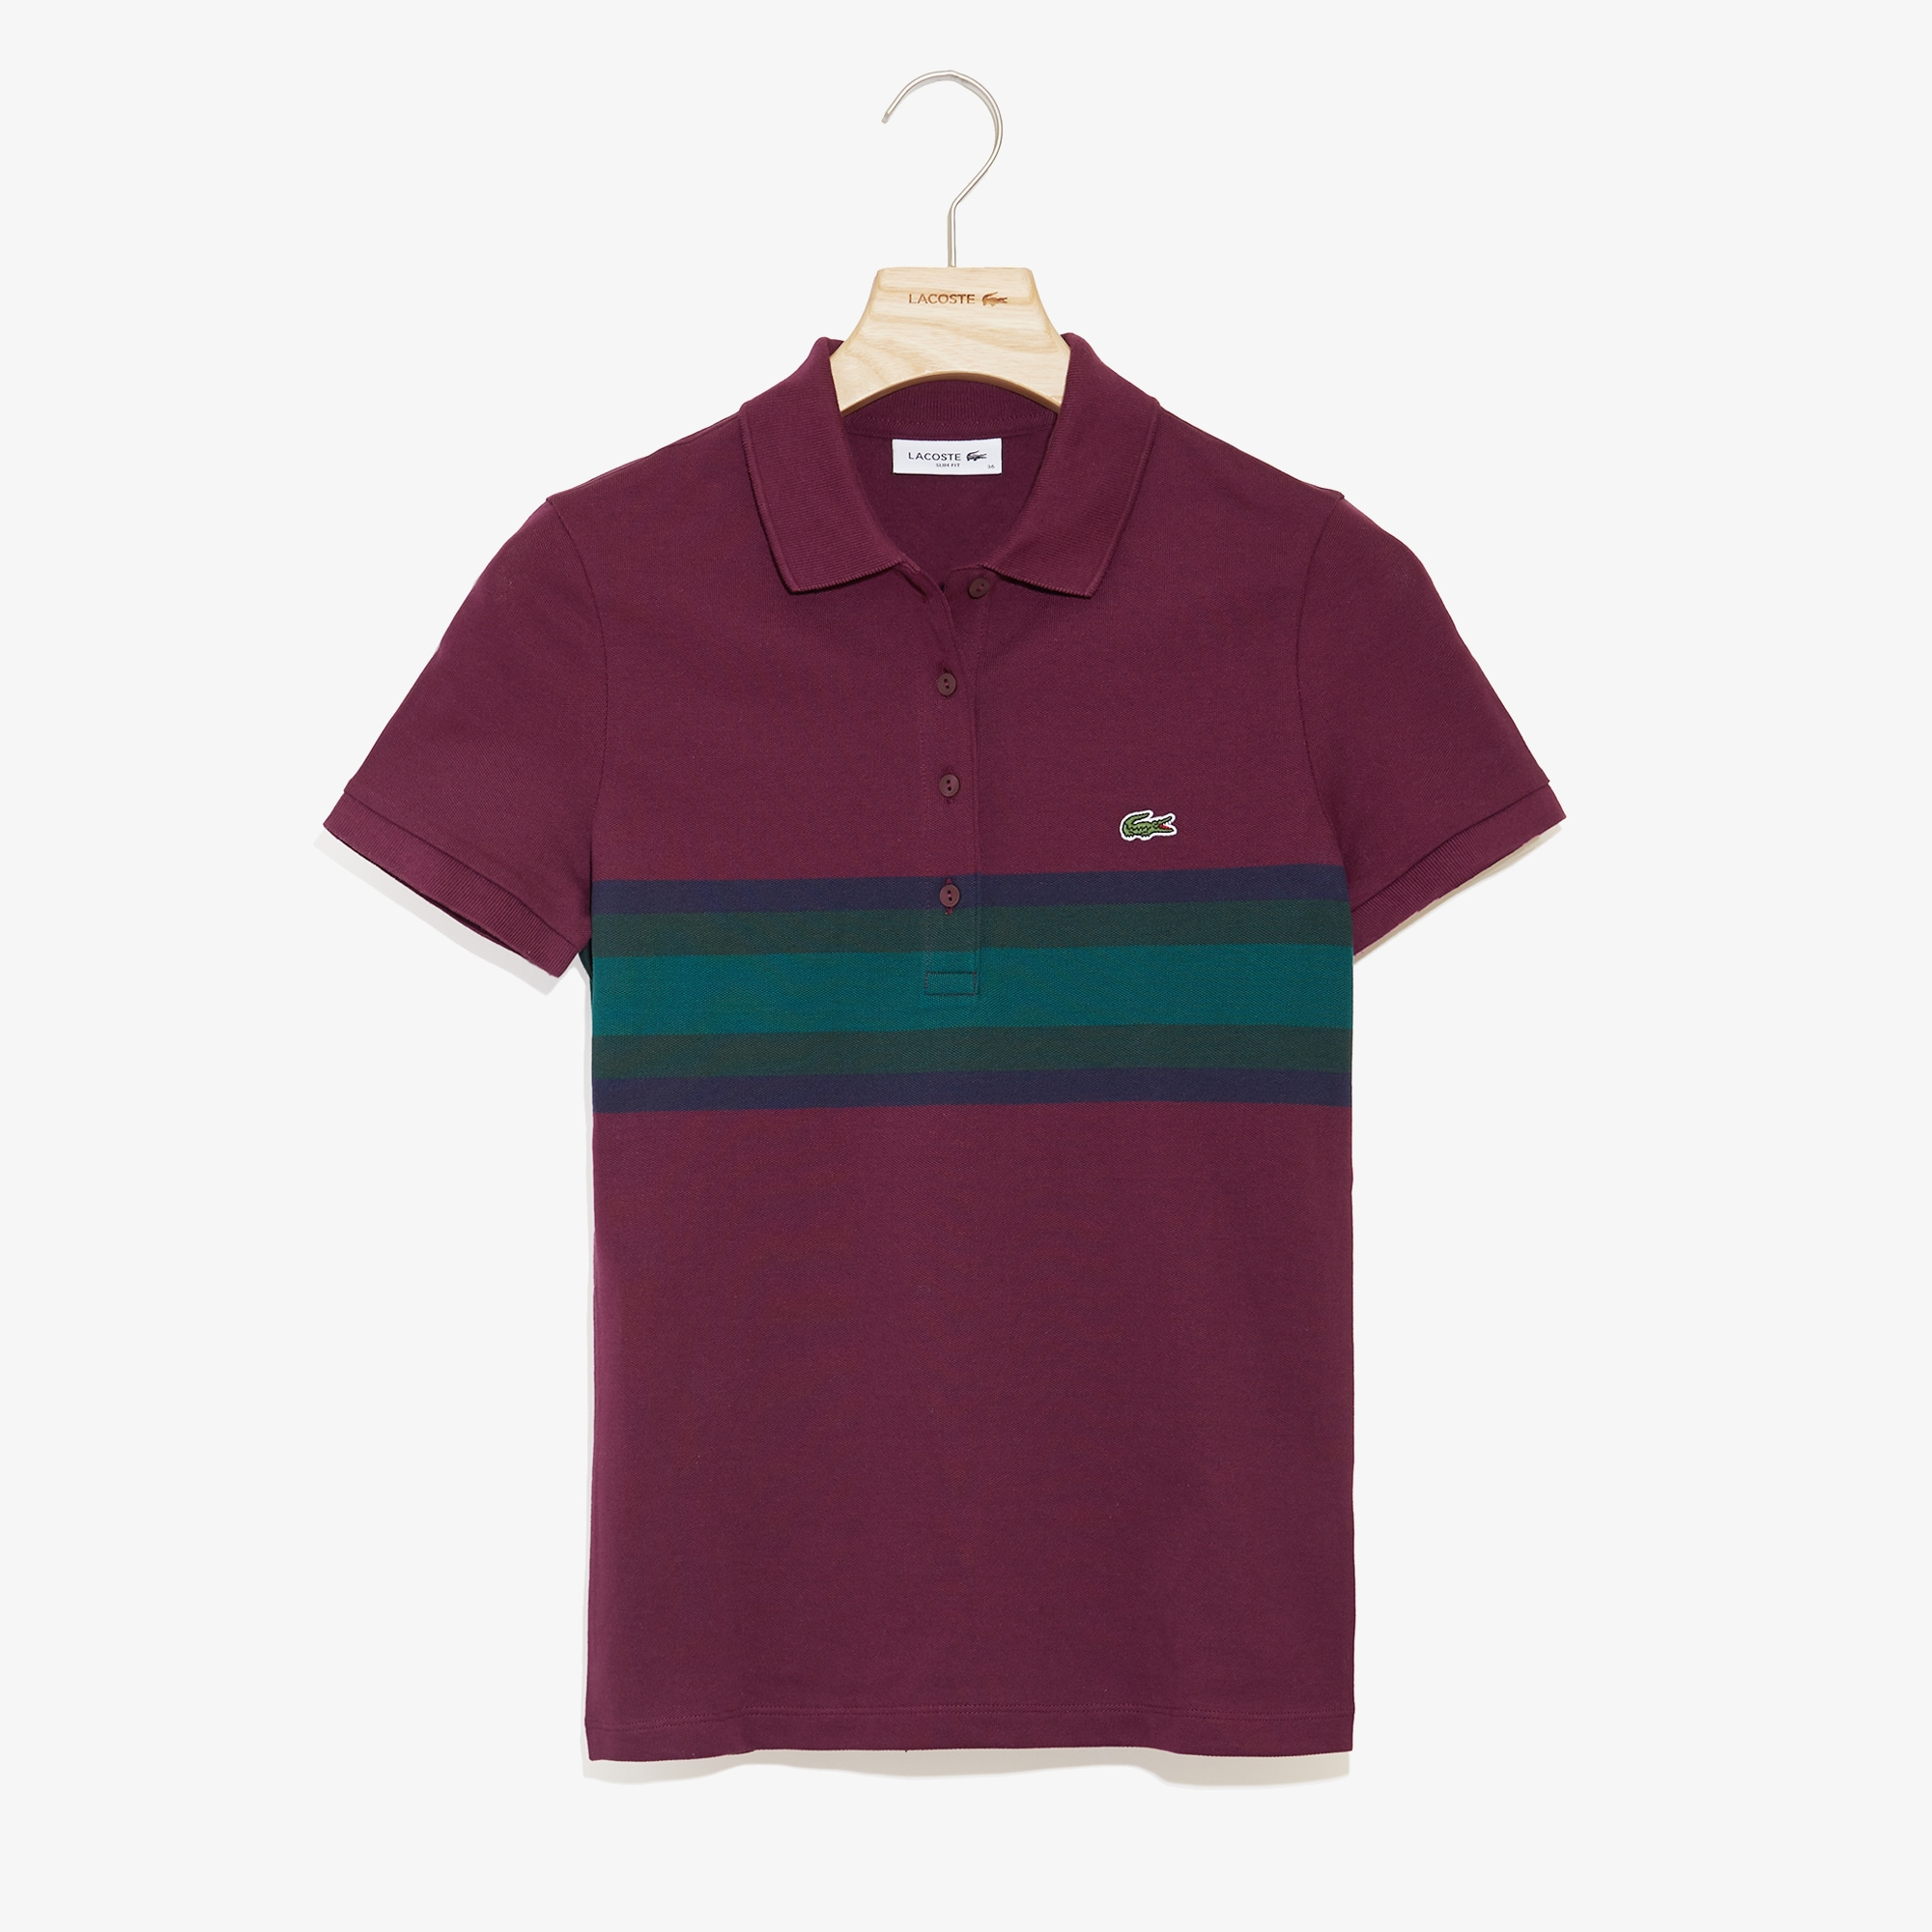 라코스테 우먼 폴로 셔츠 Lacoste Womens Color Block Stripe Polo